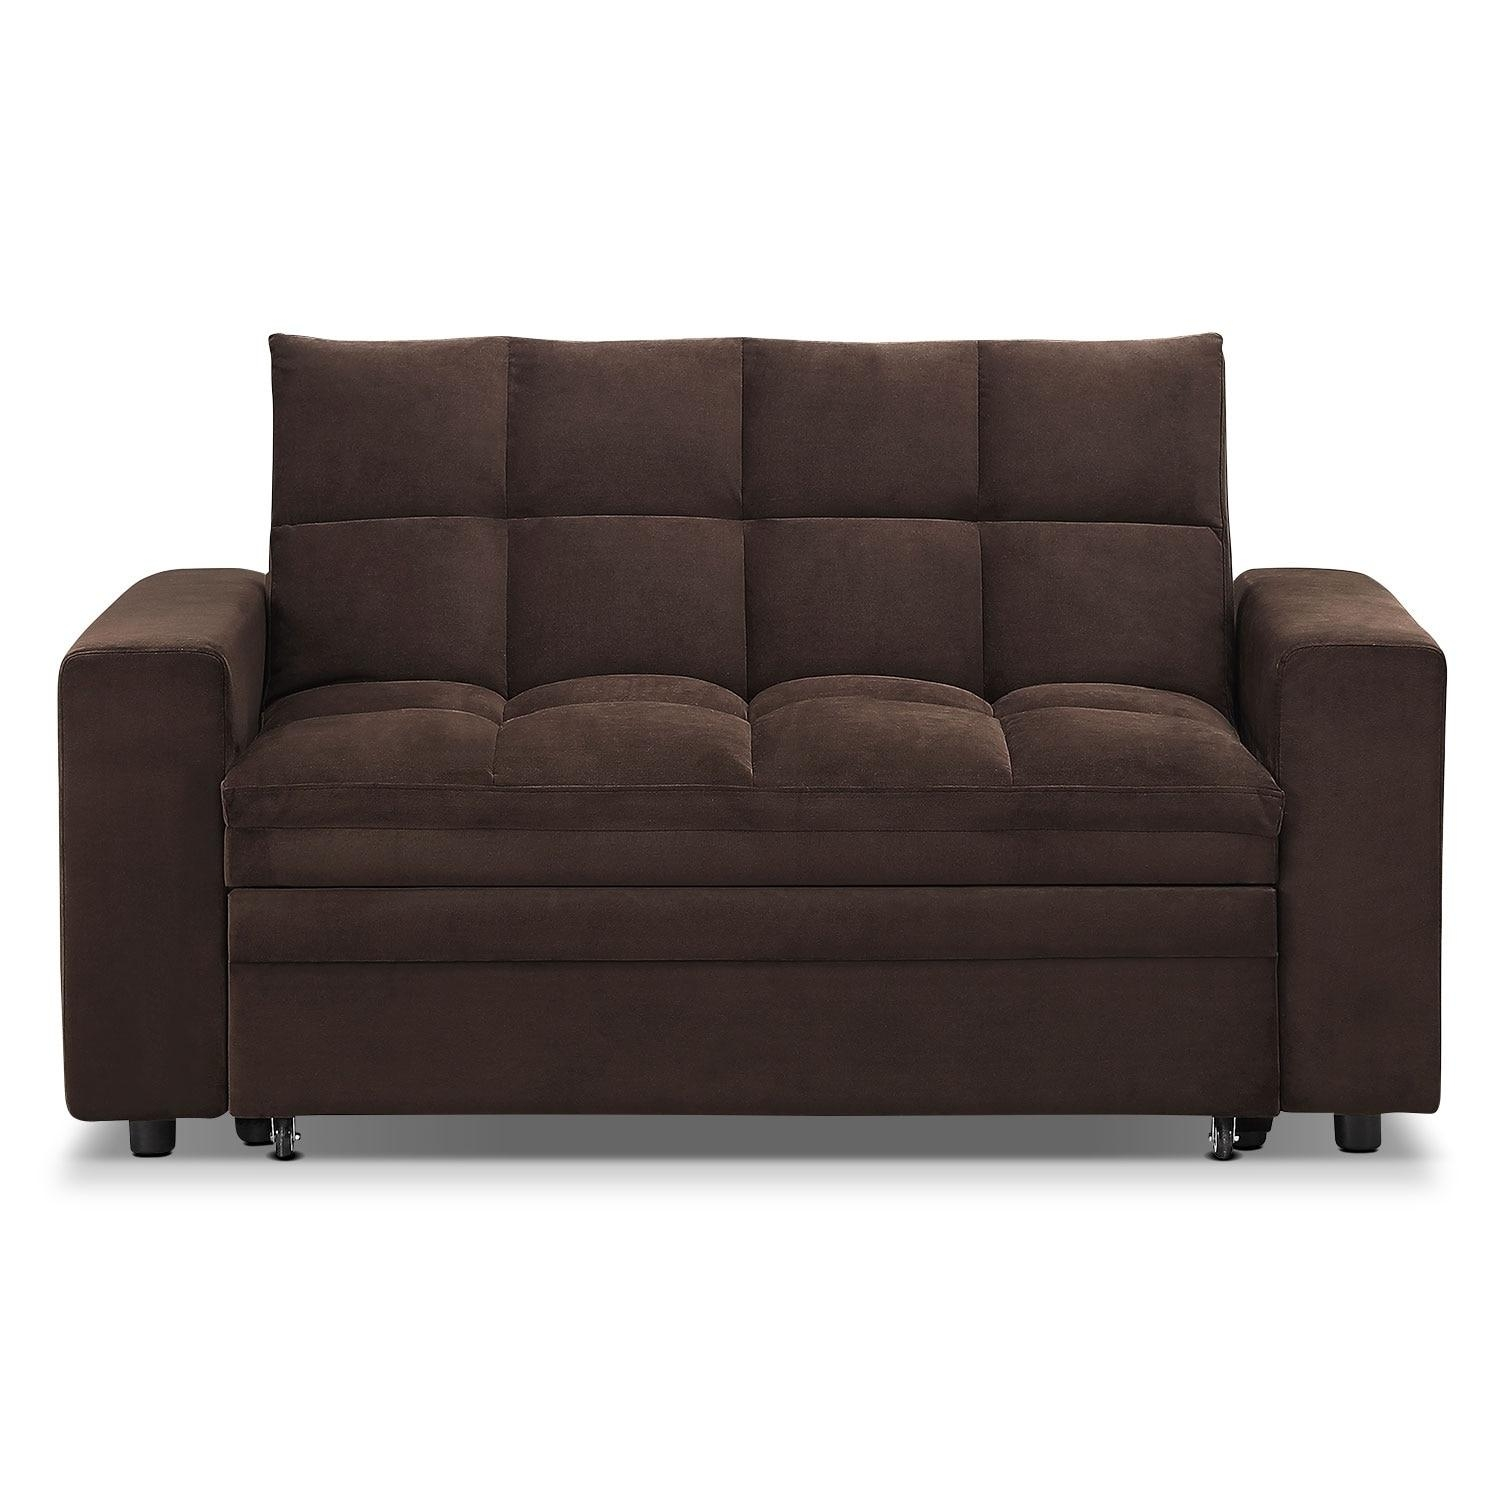 Metro Chaise Sofa Bed With Storage – Brown | American Signature Inside Chaise Sofa Beds With Storage (View 4 of 20)